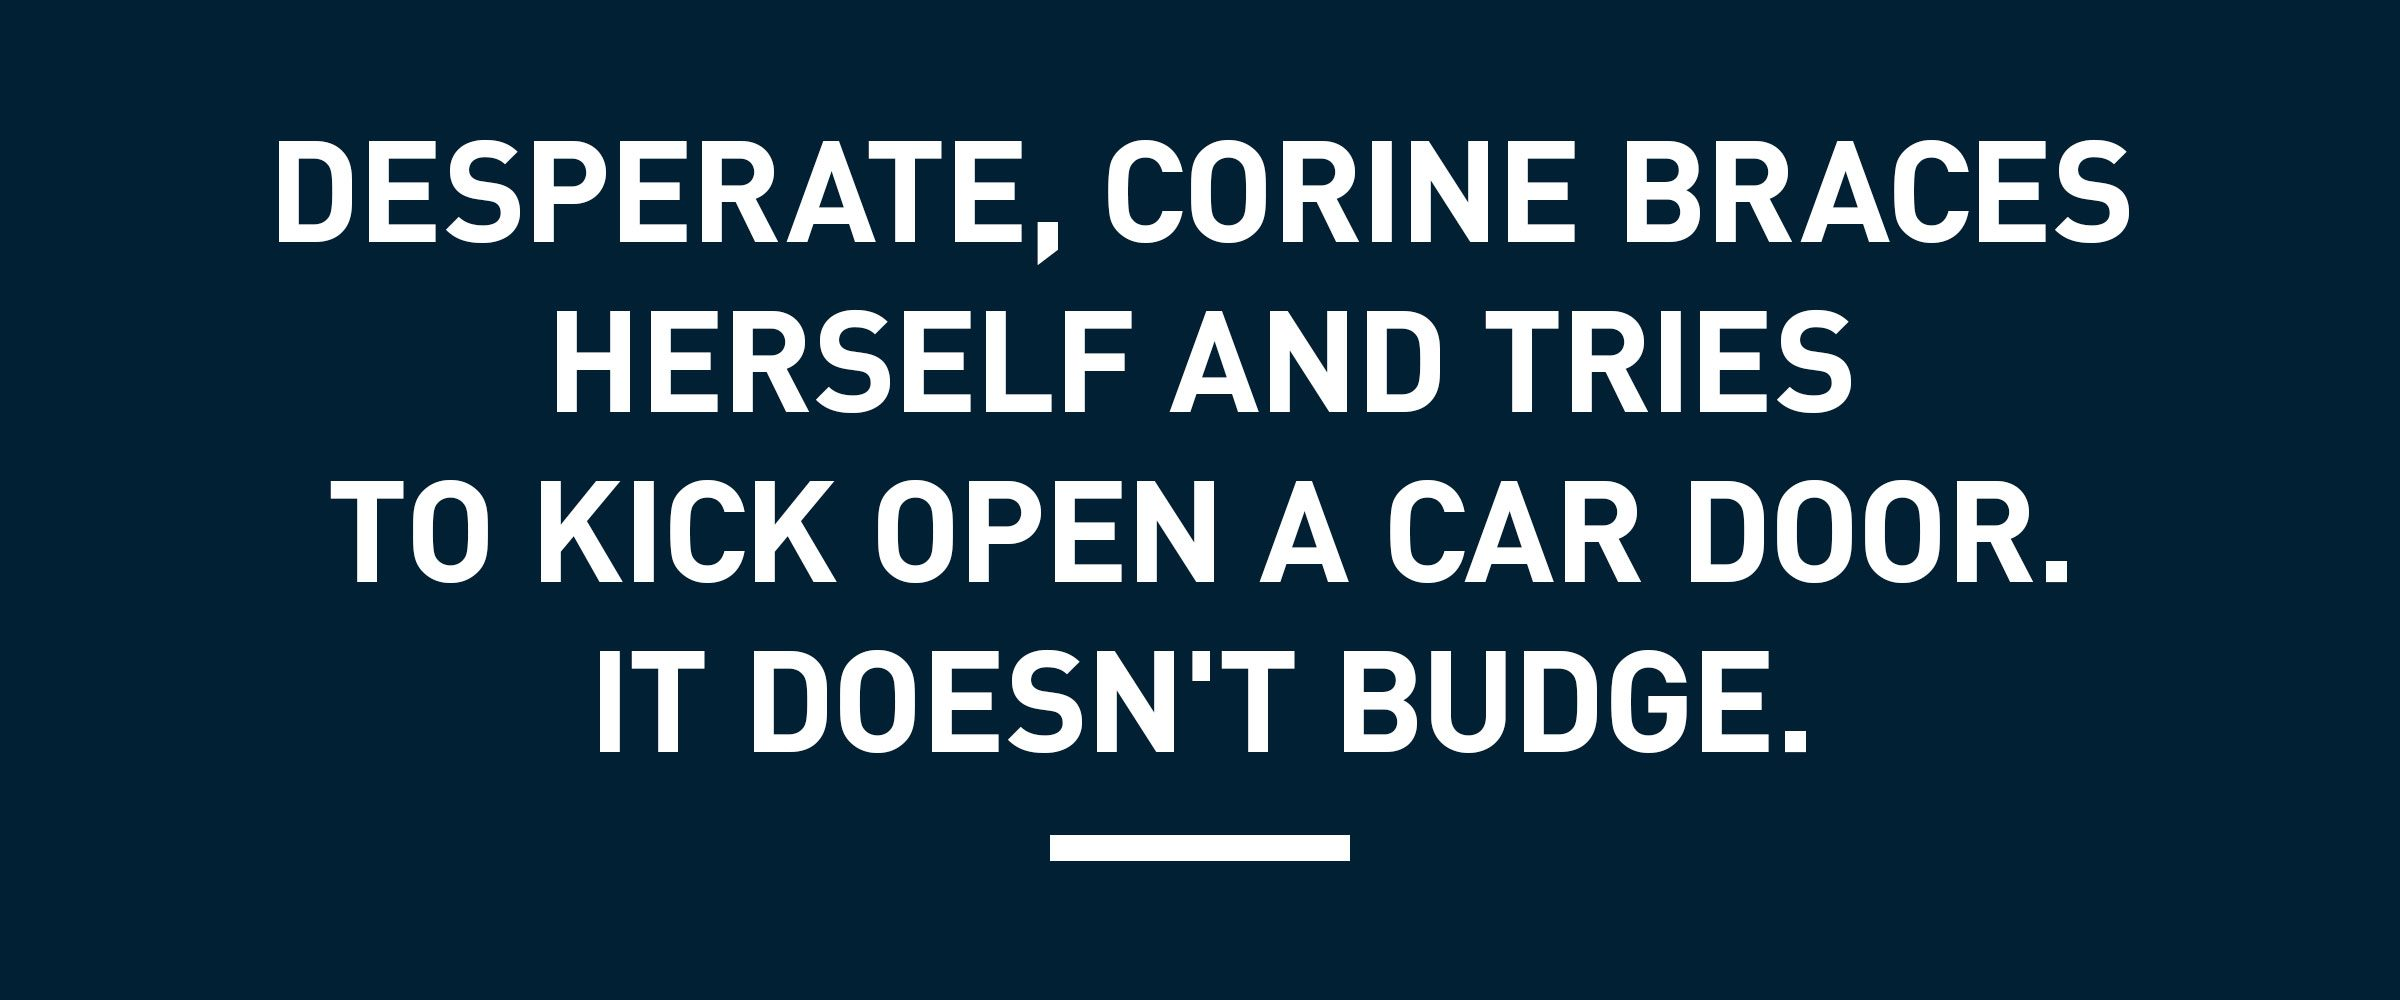 Text: Desperate, Corine braces herself and tries to kick open a car door. It doesn't budge.